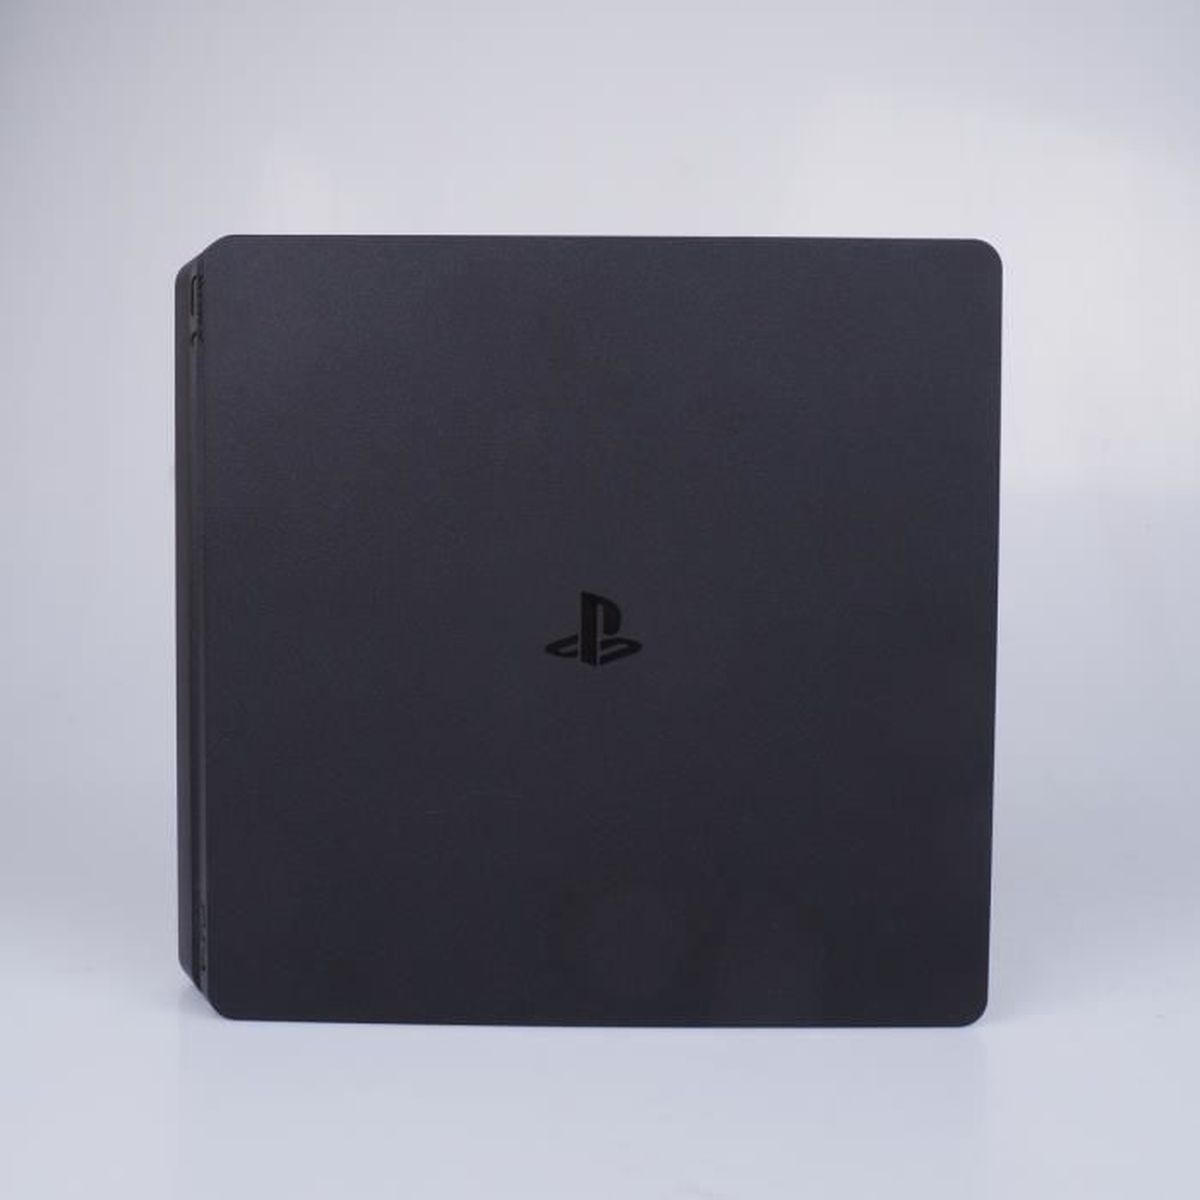 CONSOLE PS4 Sony PlayStation 4 (PS4 Slim) 1 To avec manette sa